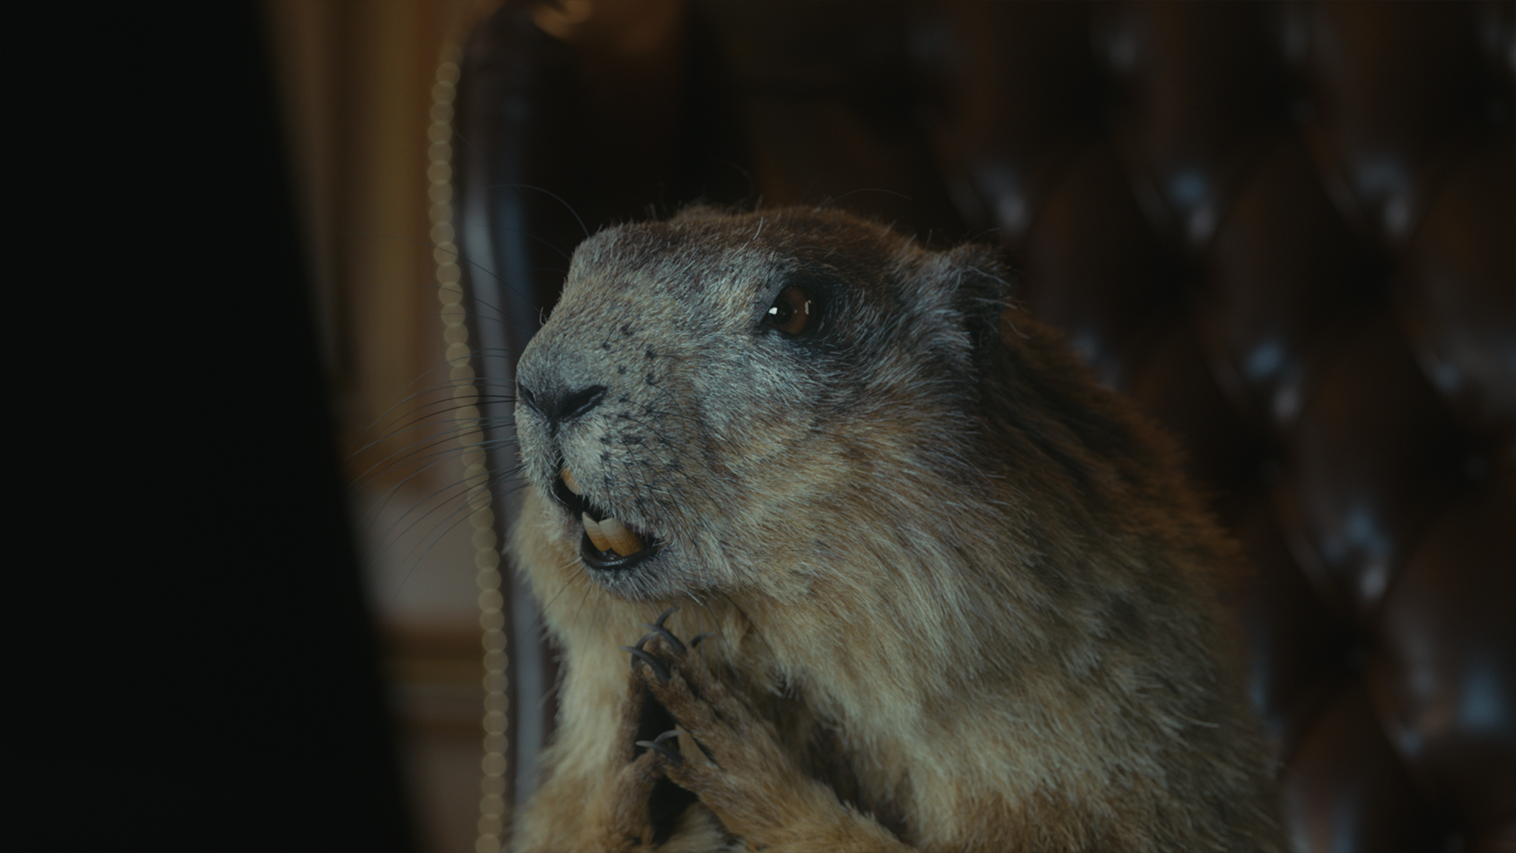 169zkb_marmot_15s_200430.png